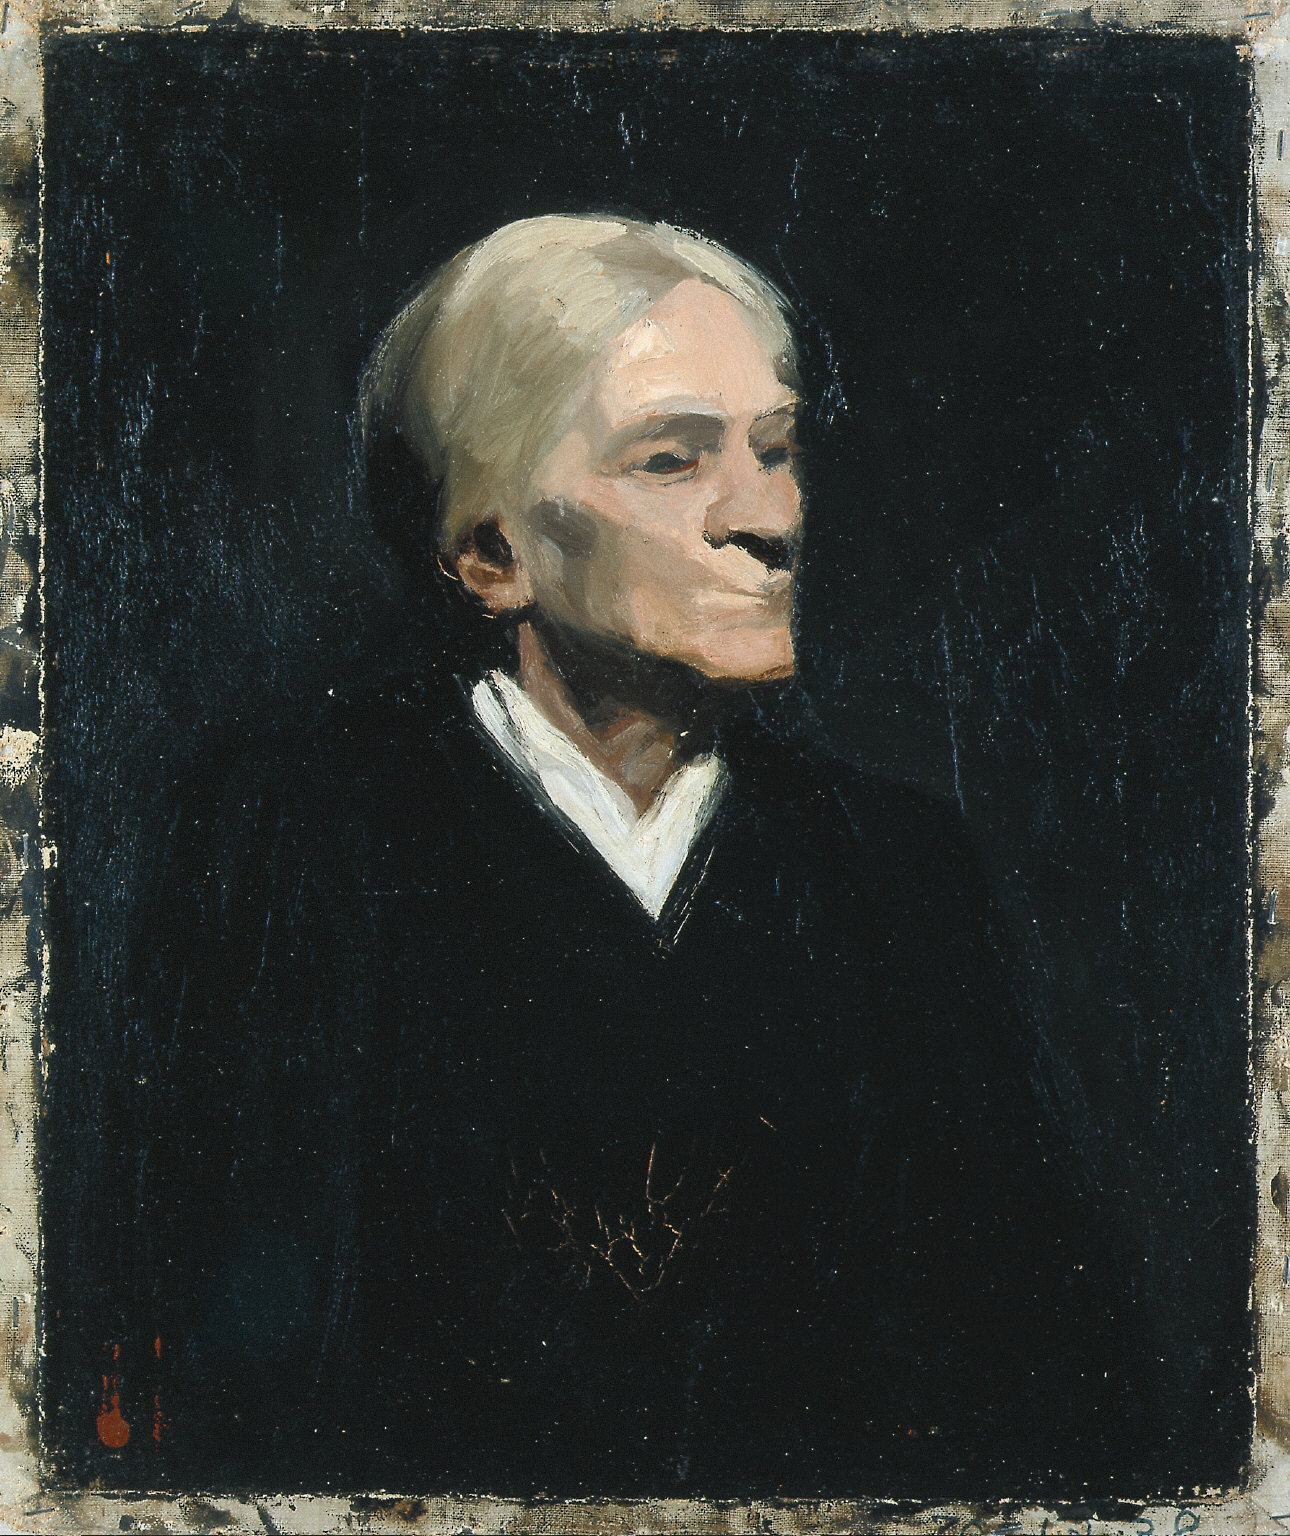 (Portrait of an Old Woman)